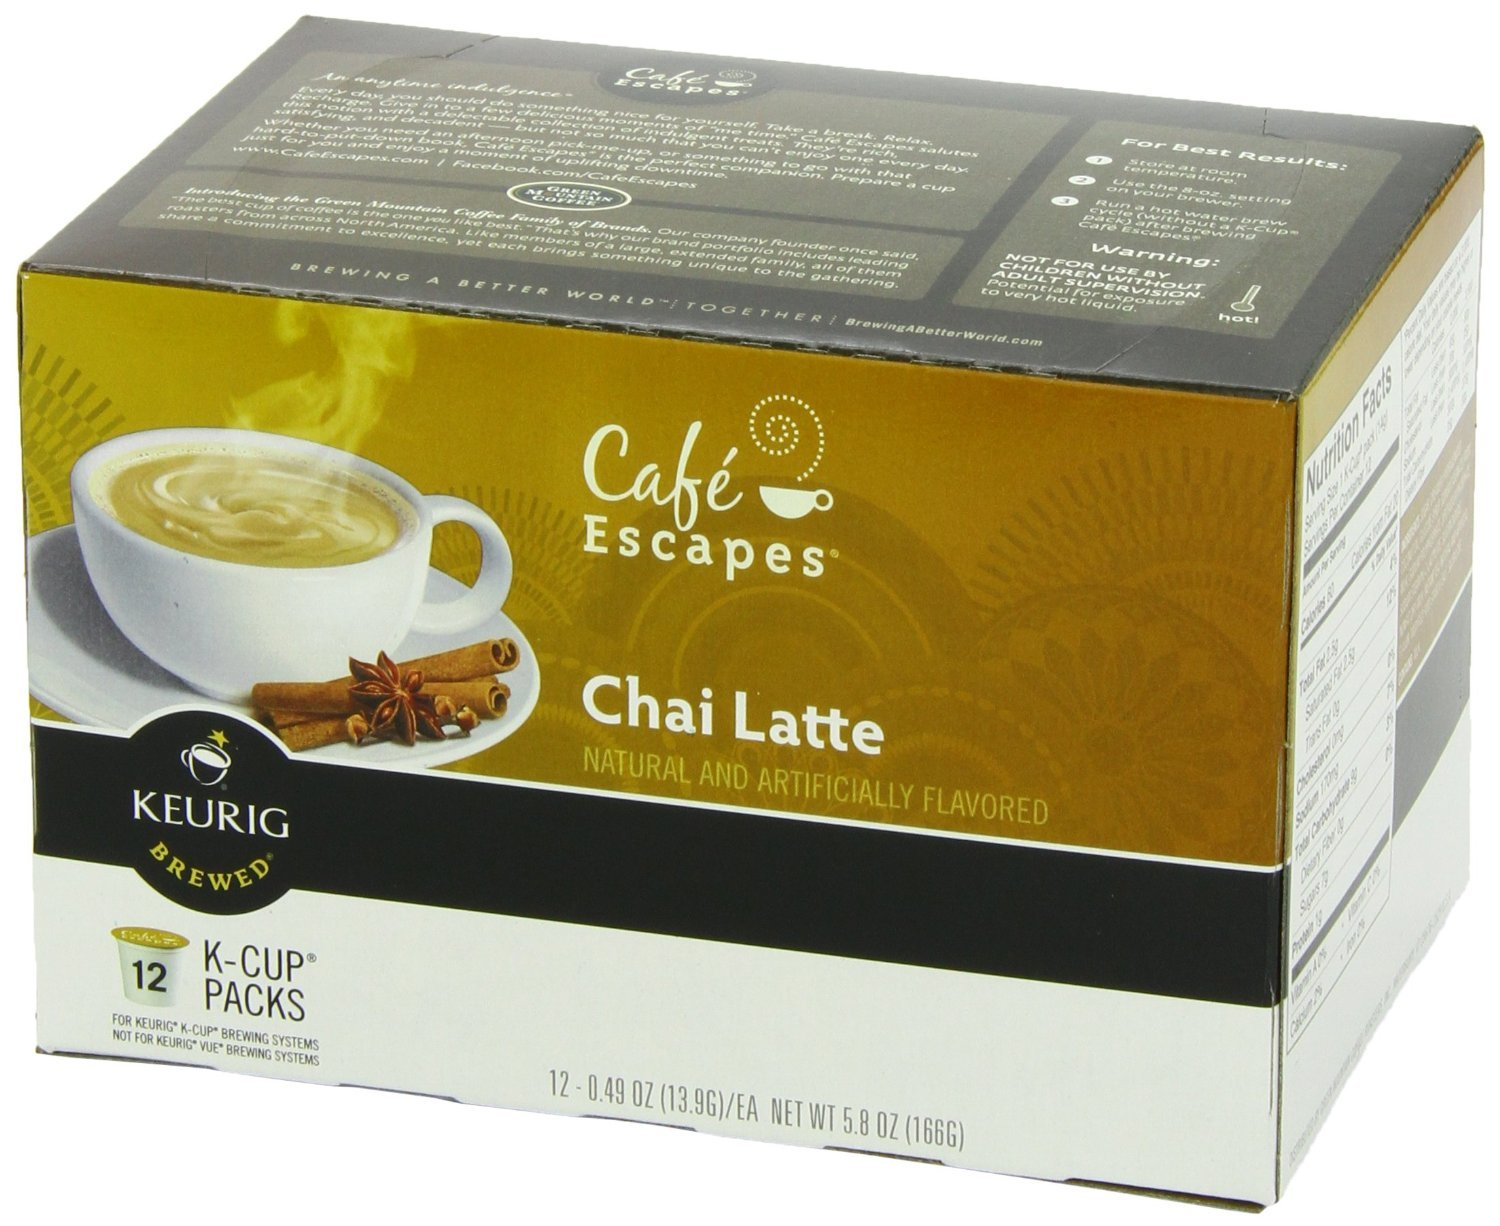 Cafe Escapes Chai Latte, K-Cup Portion Pack for Keurig Brewers, Jumbo Pack 12-Count (Pack of 6 (72 total)) by Cafe Escapes